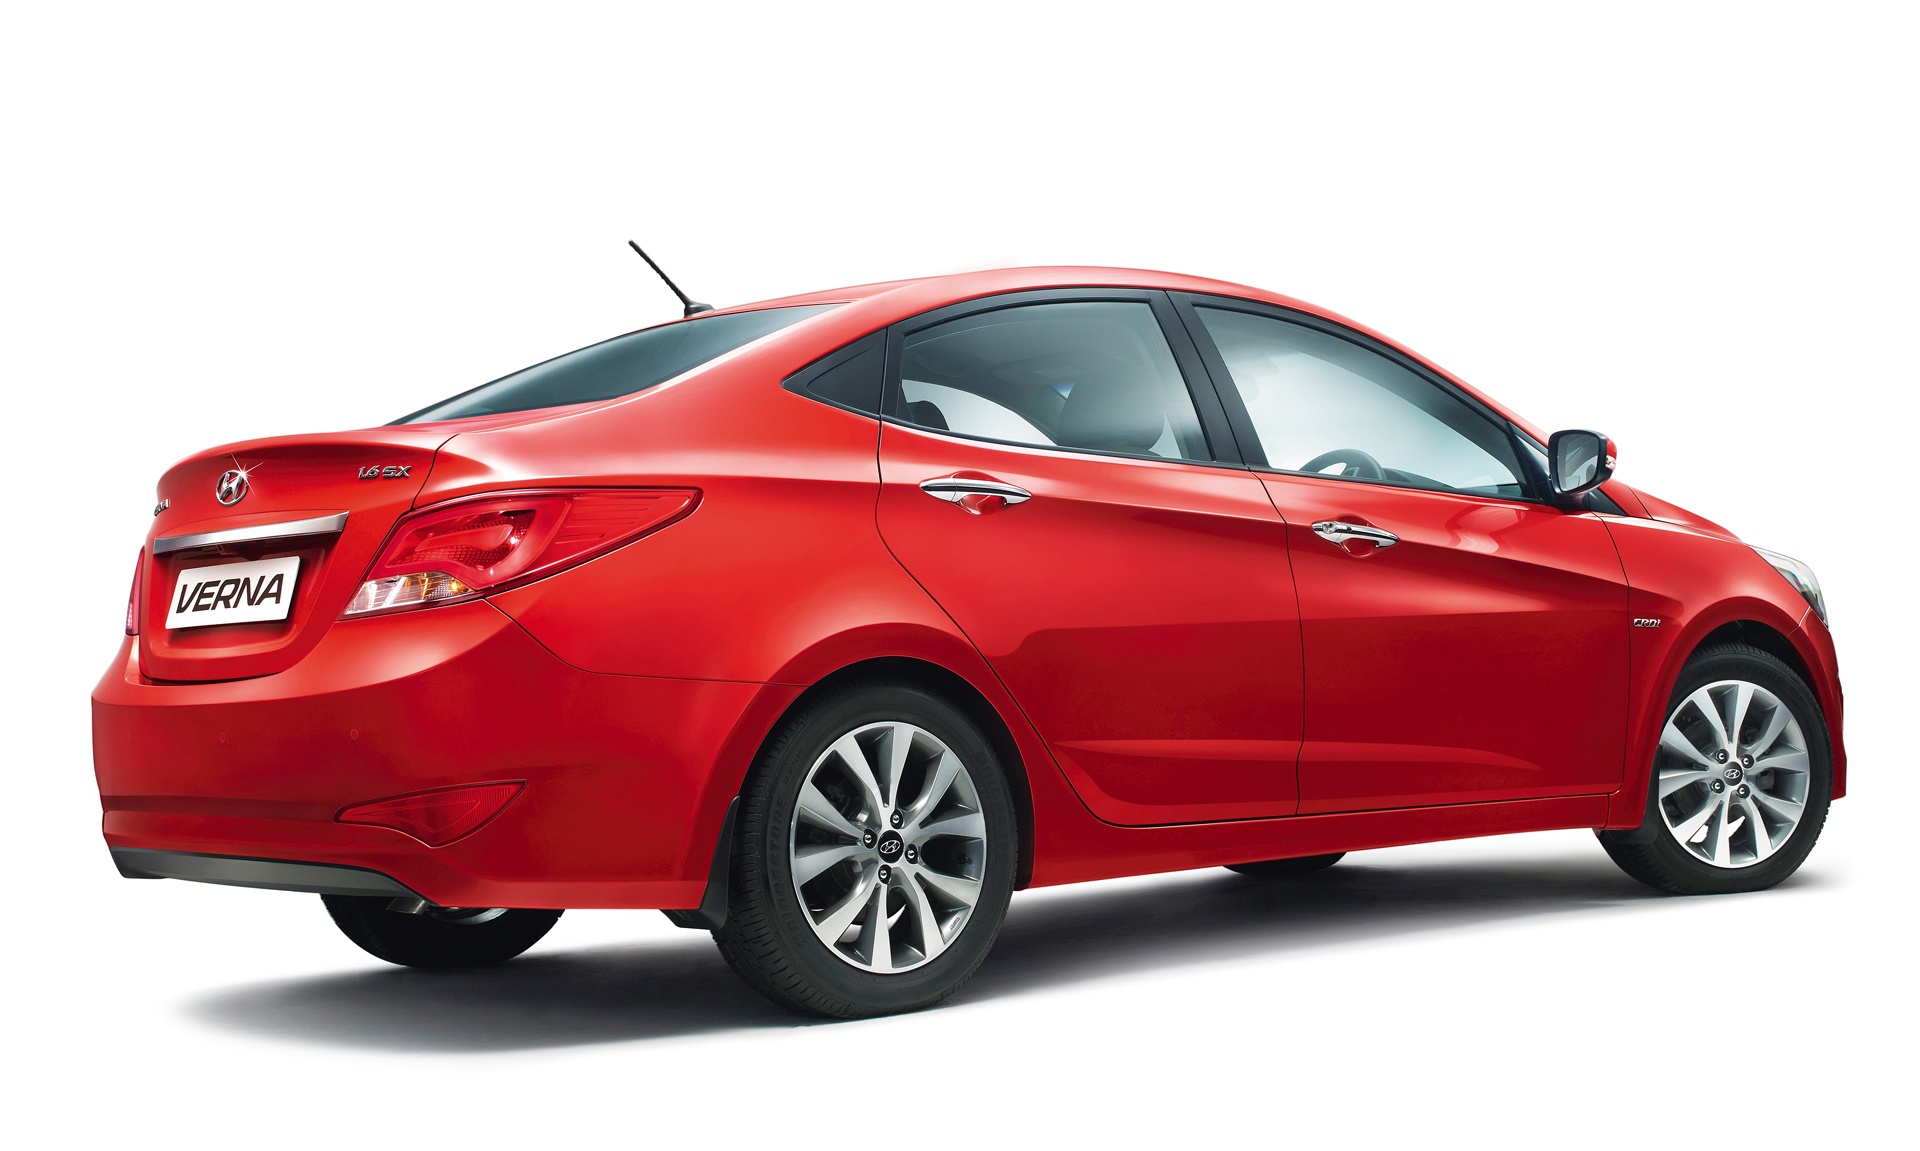 2015 Hyundai Verna Facelift Launched In India Priced At